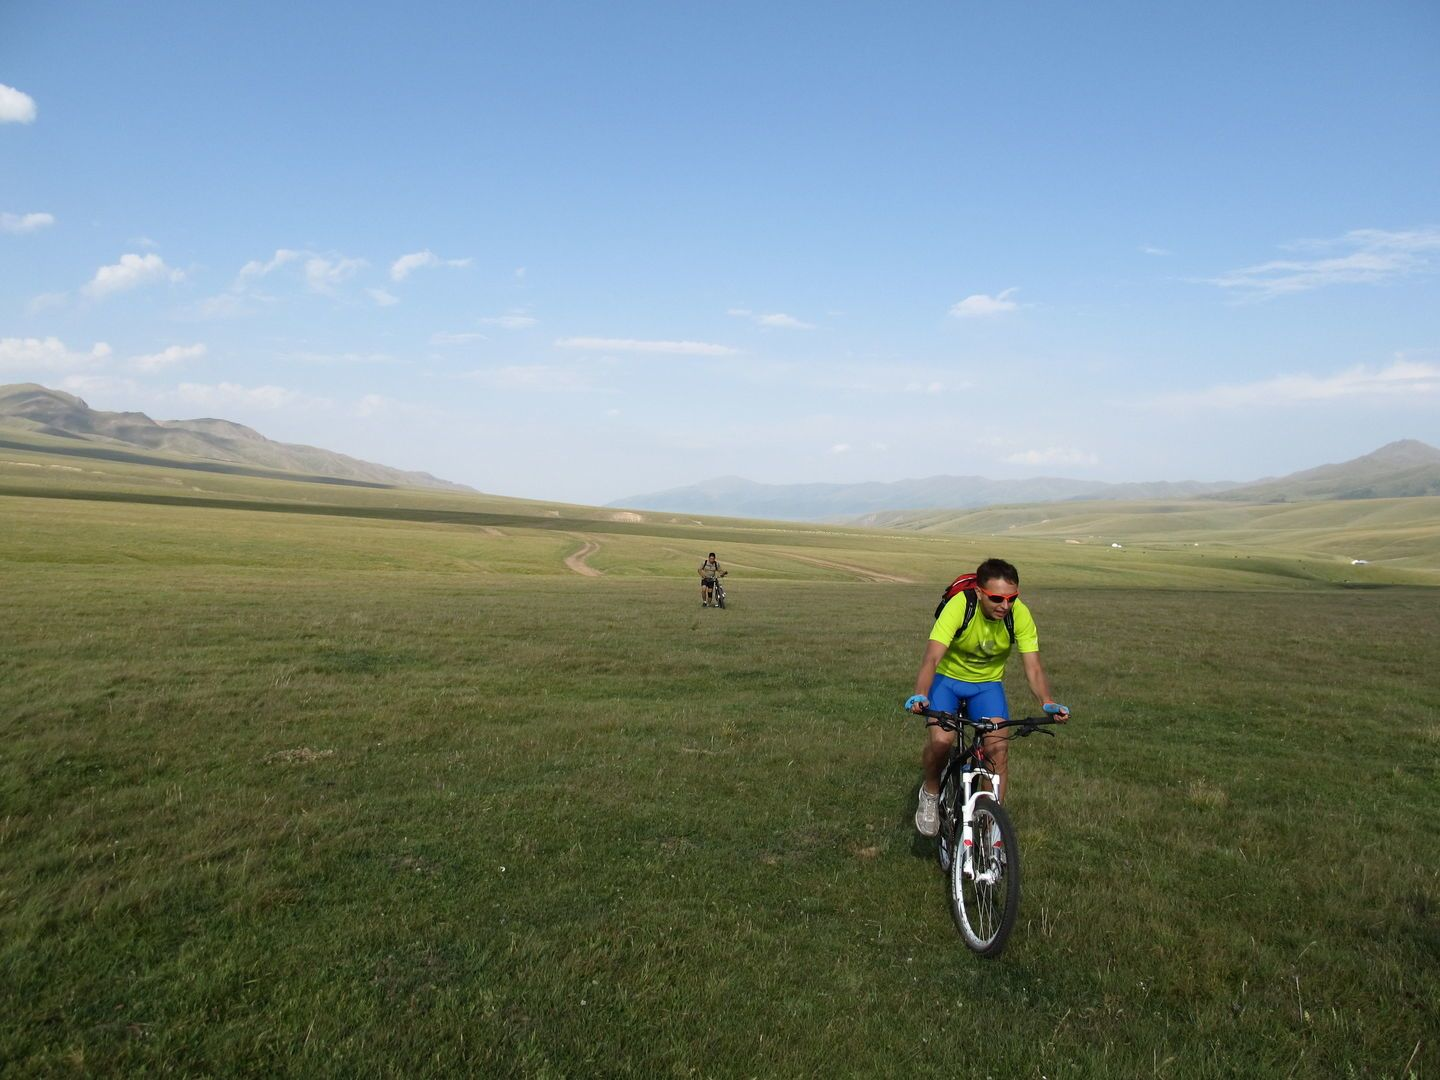 biking adventure of tourists in the Kazakh steppes